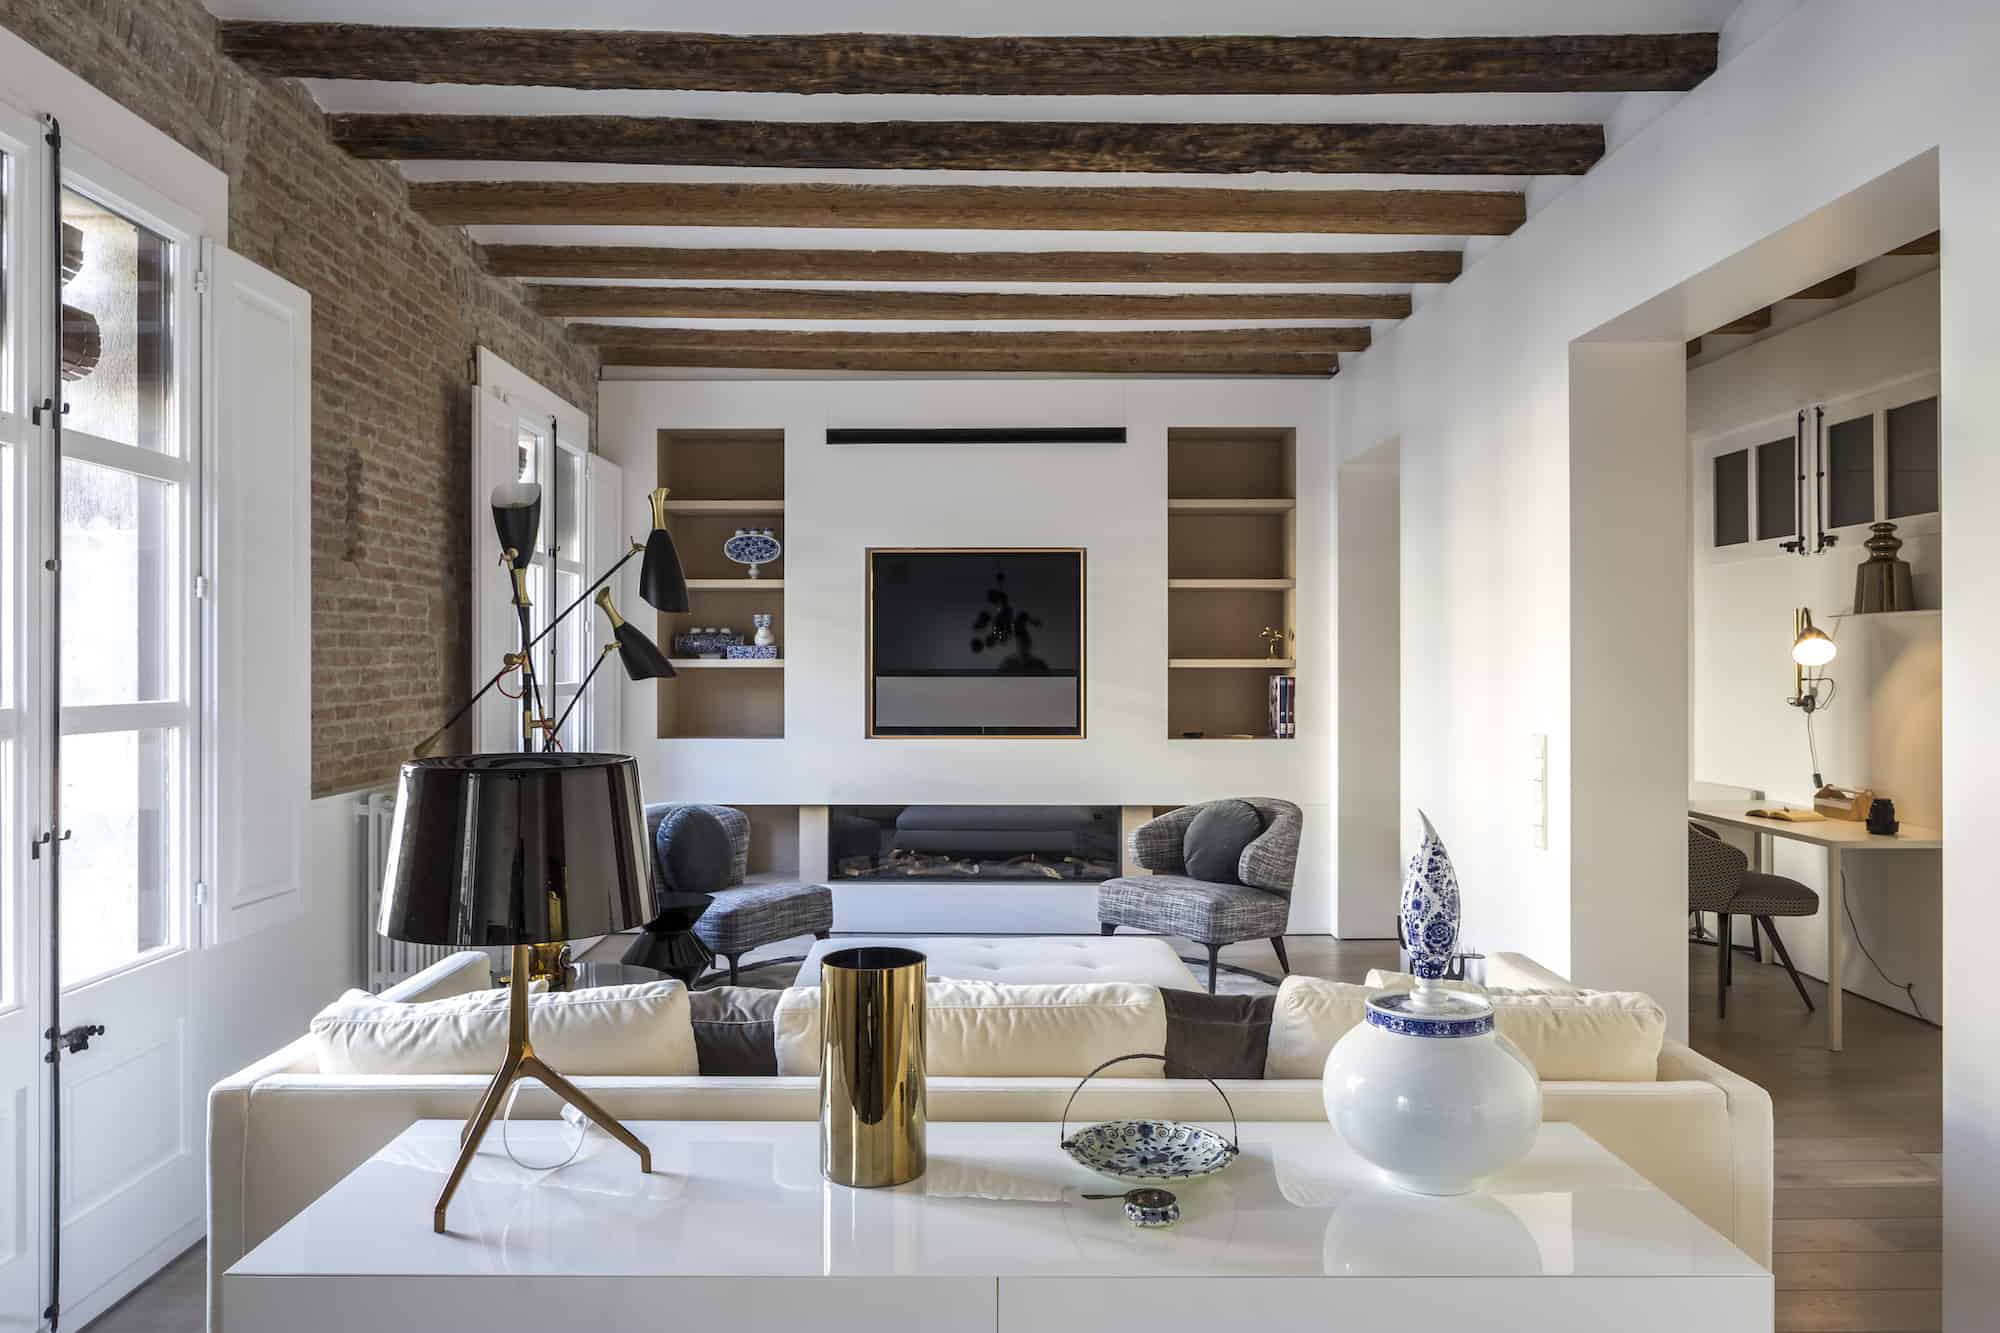 barcelona apartment with Minotti furniture